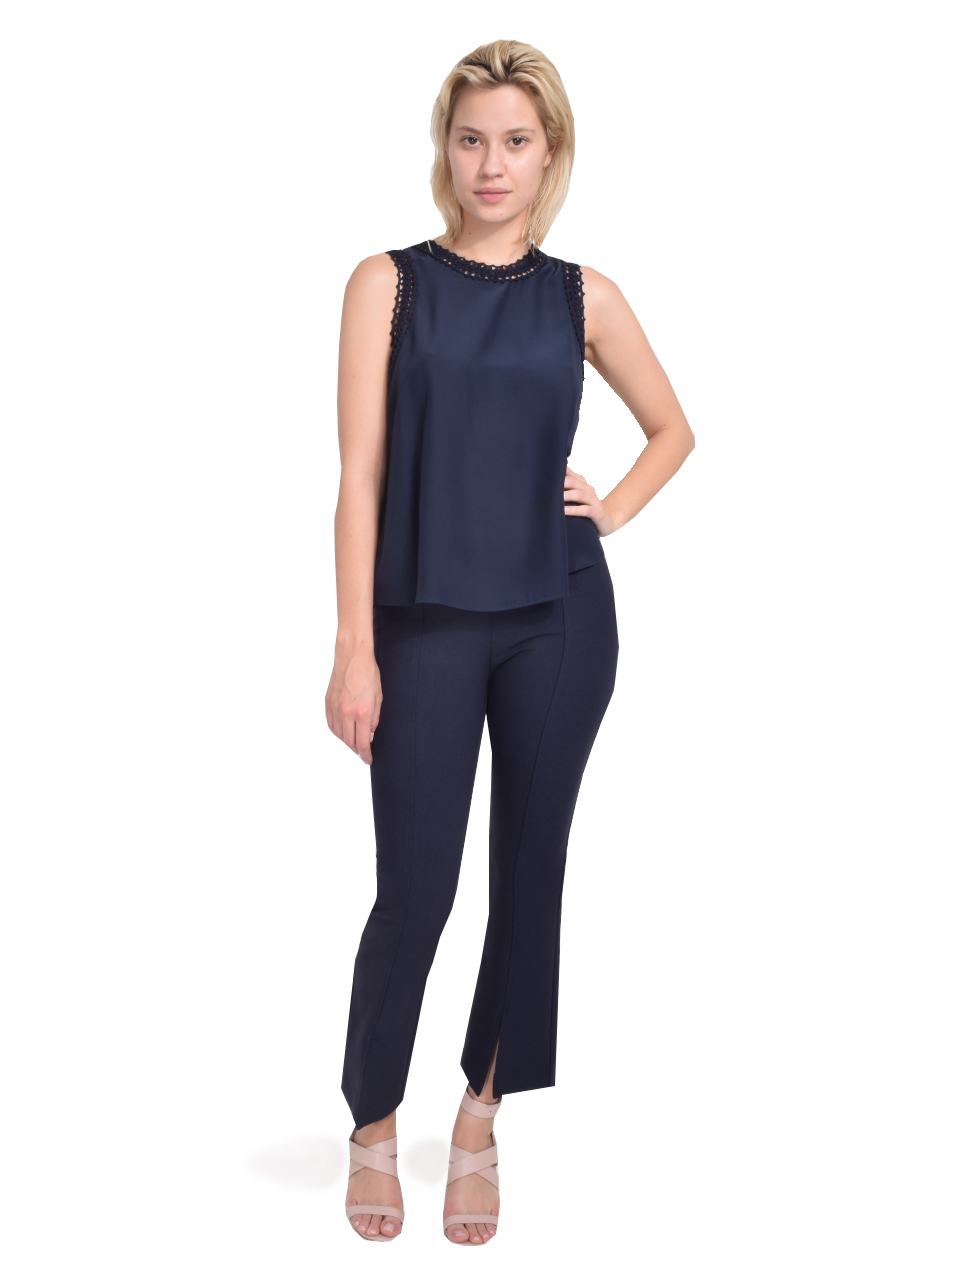 Cinq à Sept Ellina Top in Navy Full Outfit